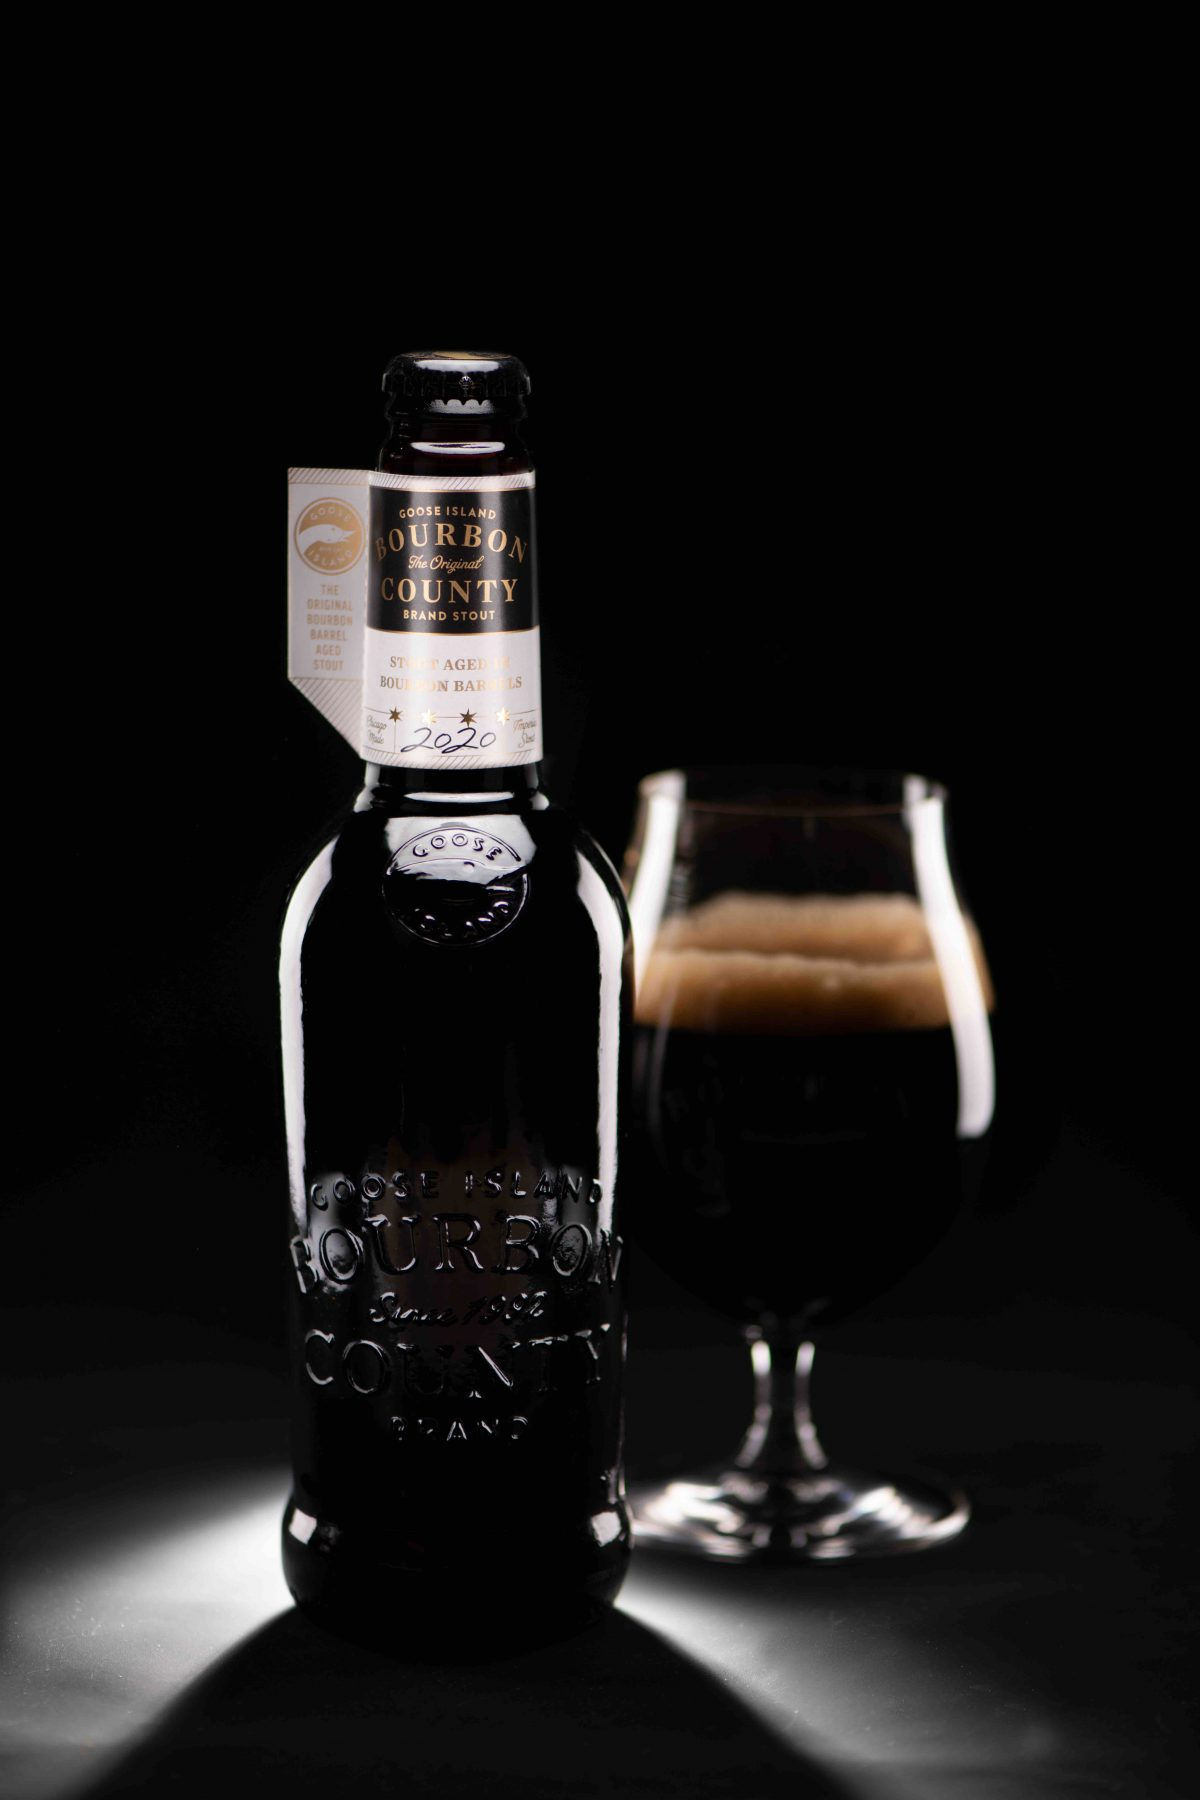 image of 2020 Bourbon County Stout courtesy of Goose Island Beer Co.